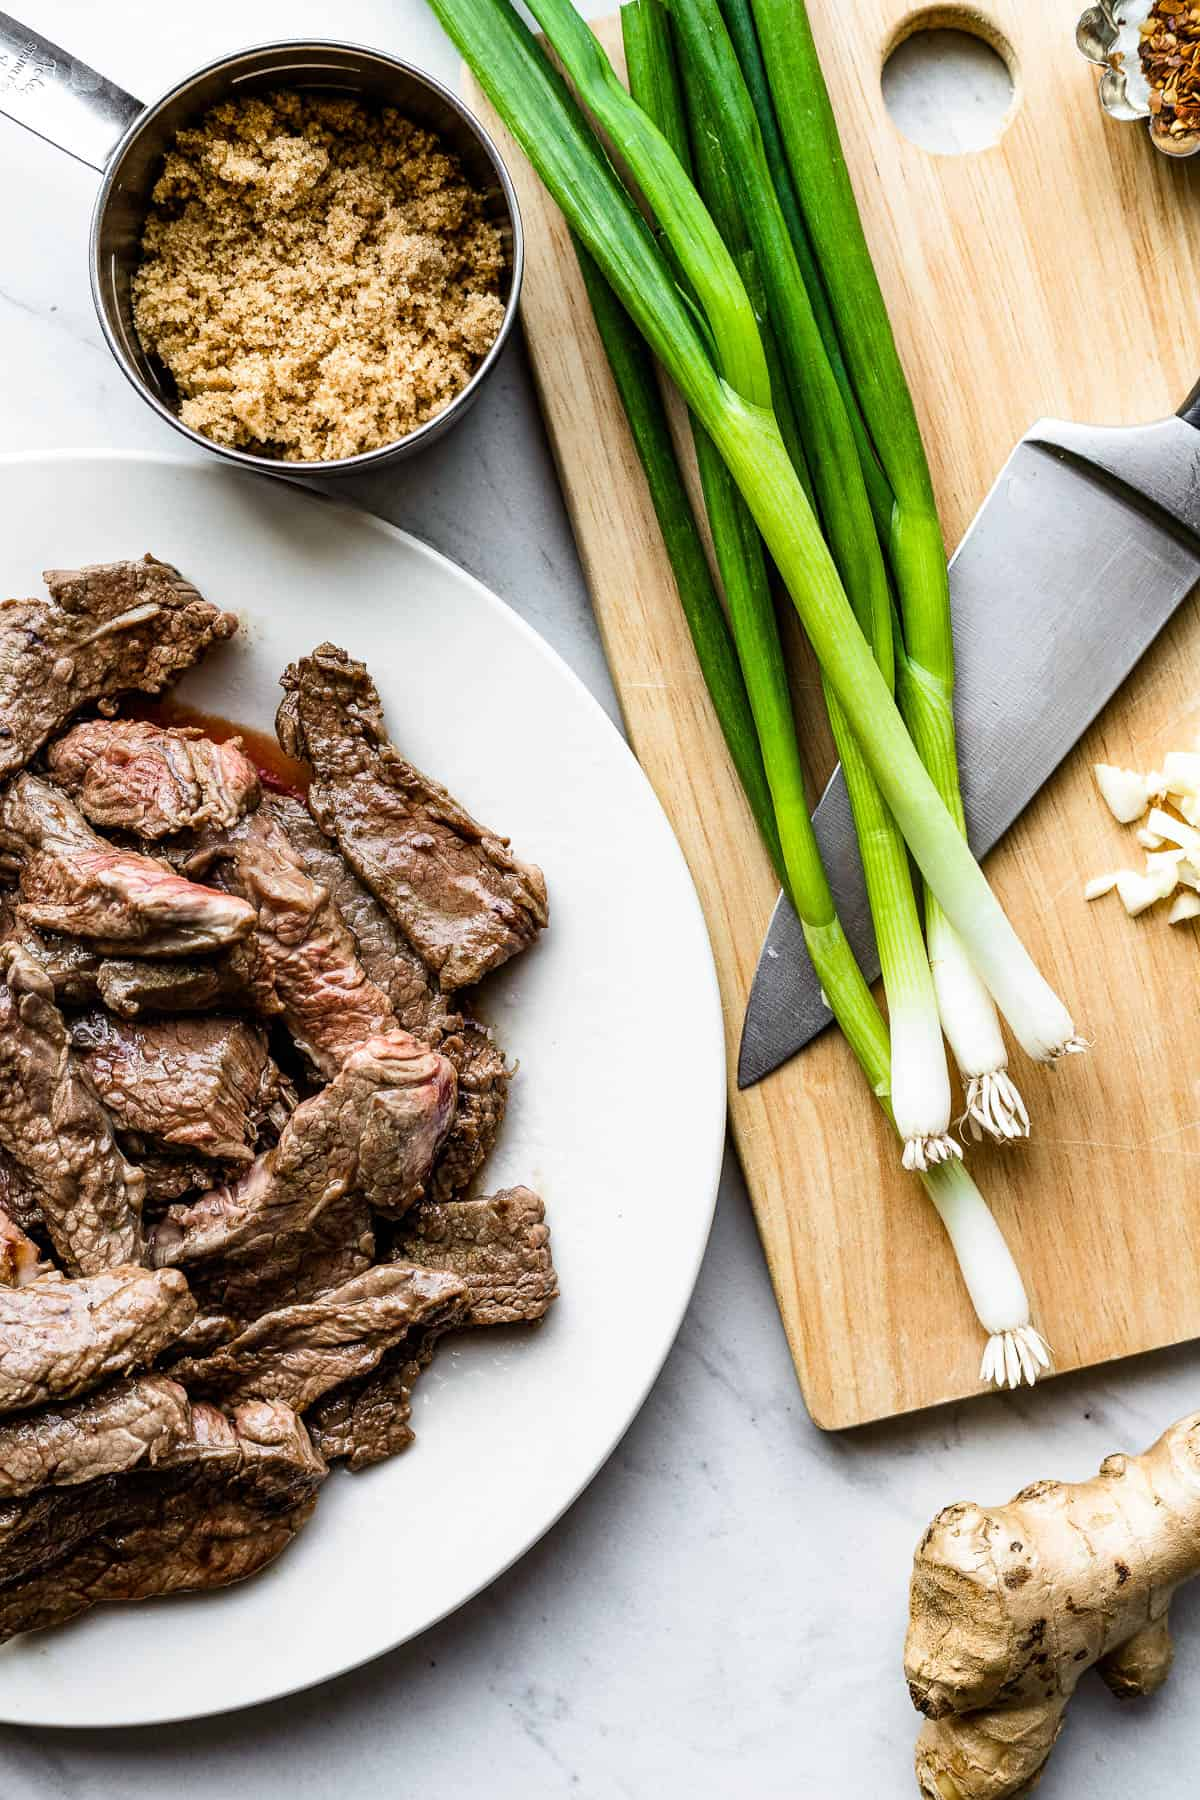 Green Onions, Garlic, Soy Sauce, Slices of Flank Steak and the Rest of the Ingredients on Two Different Baking Sheets